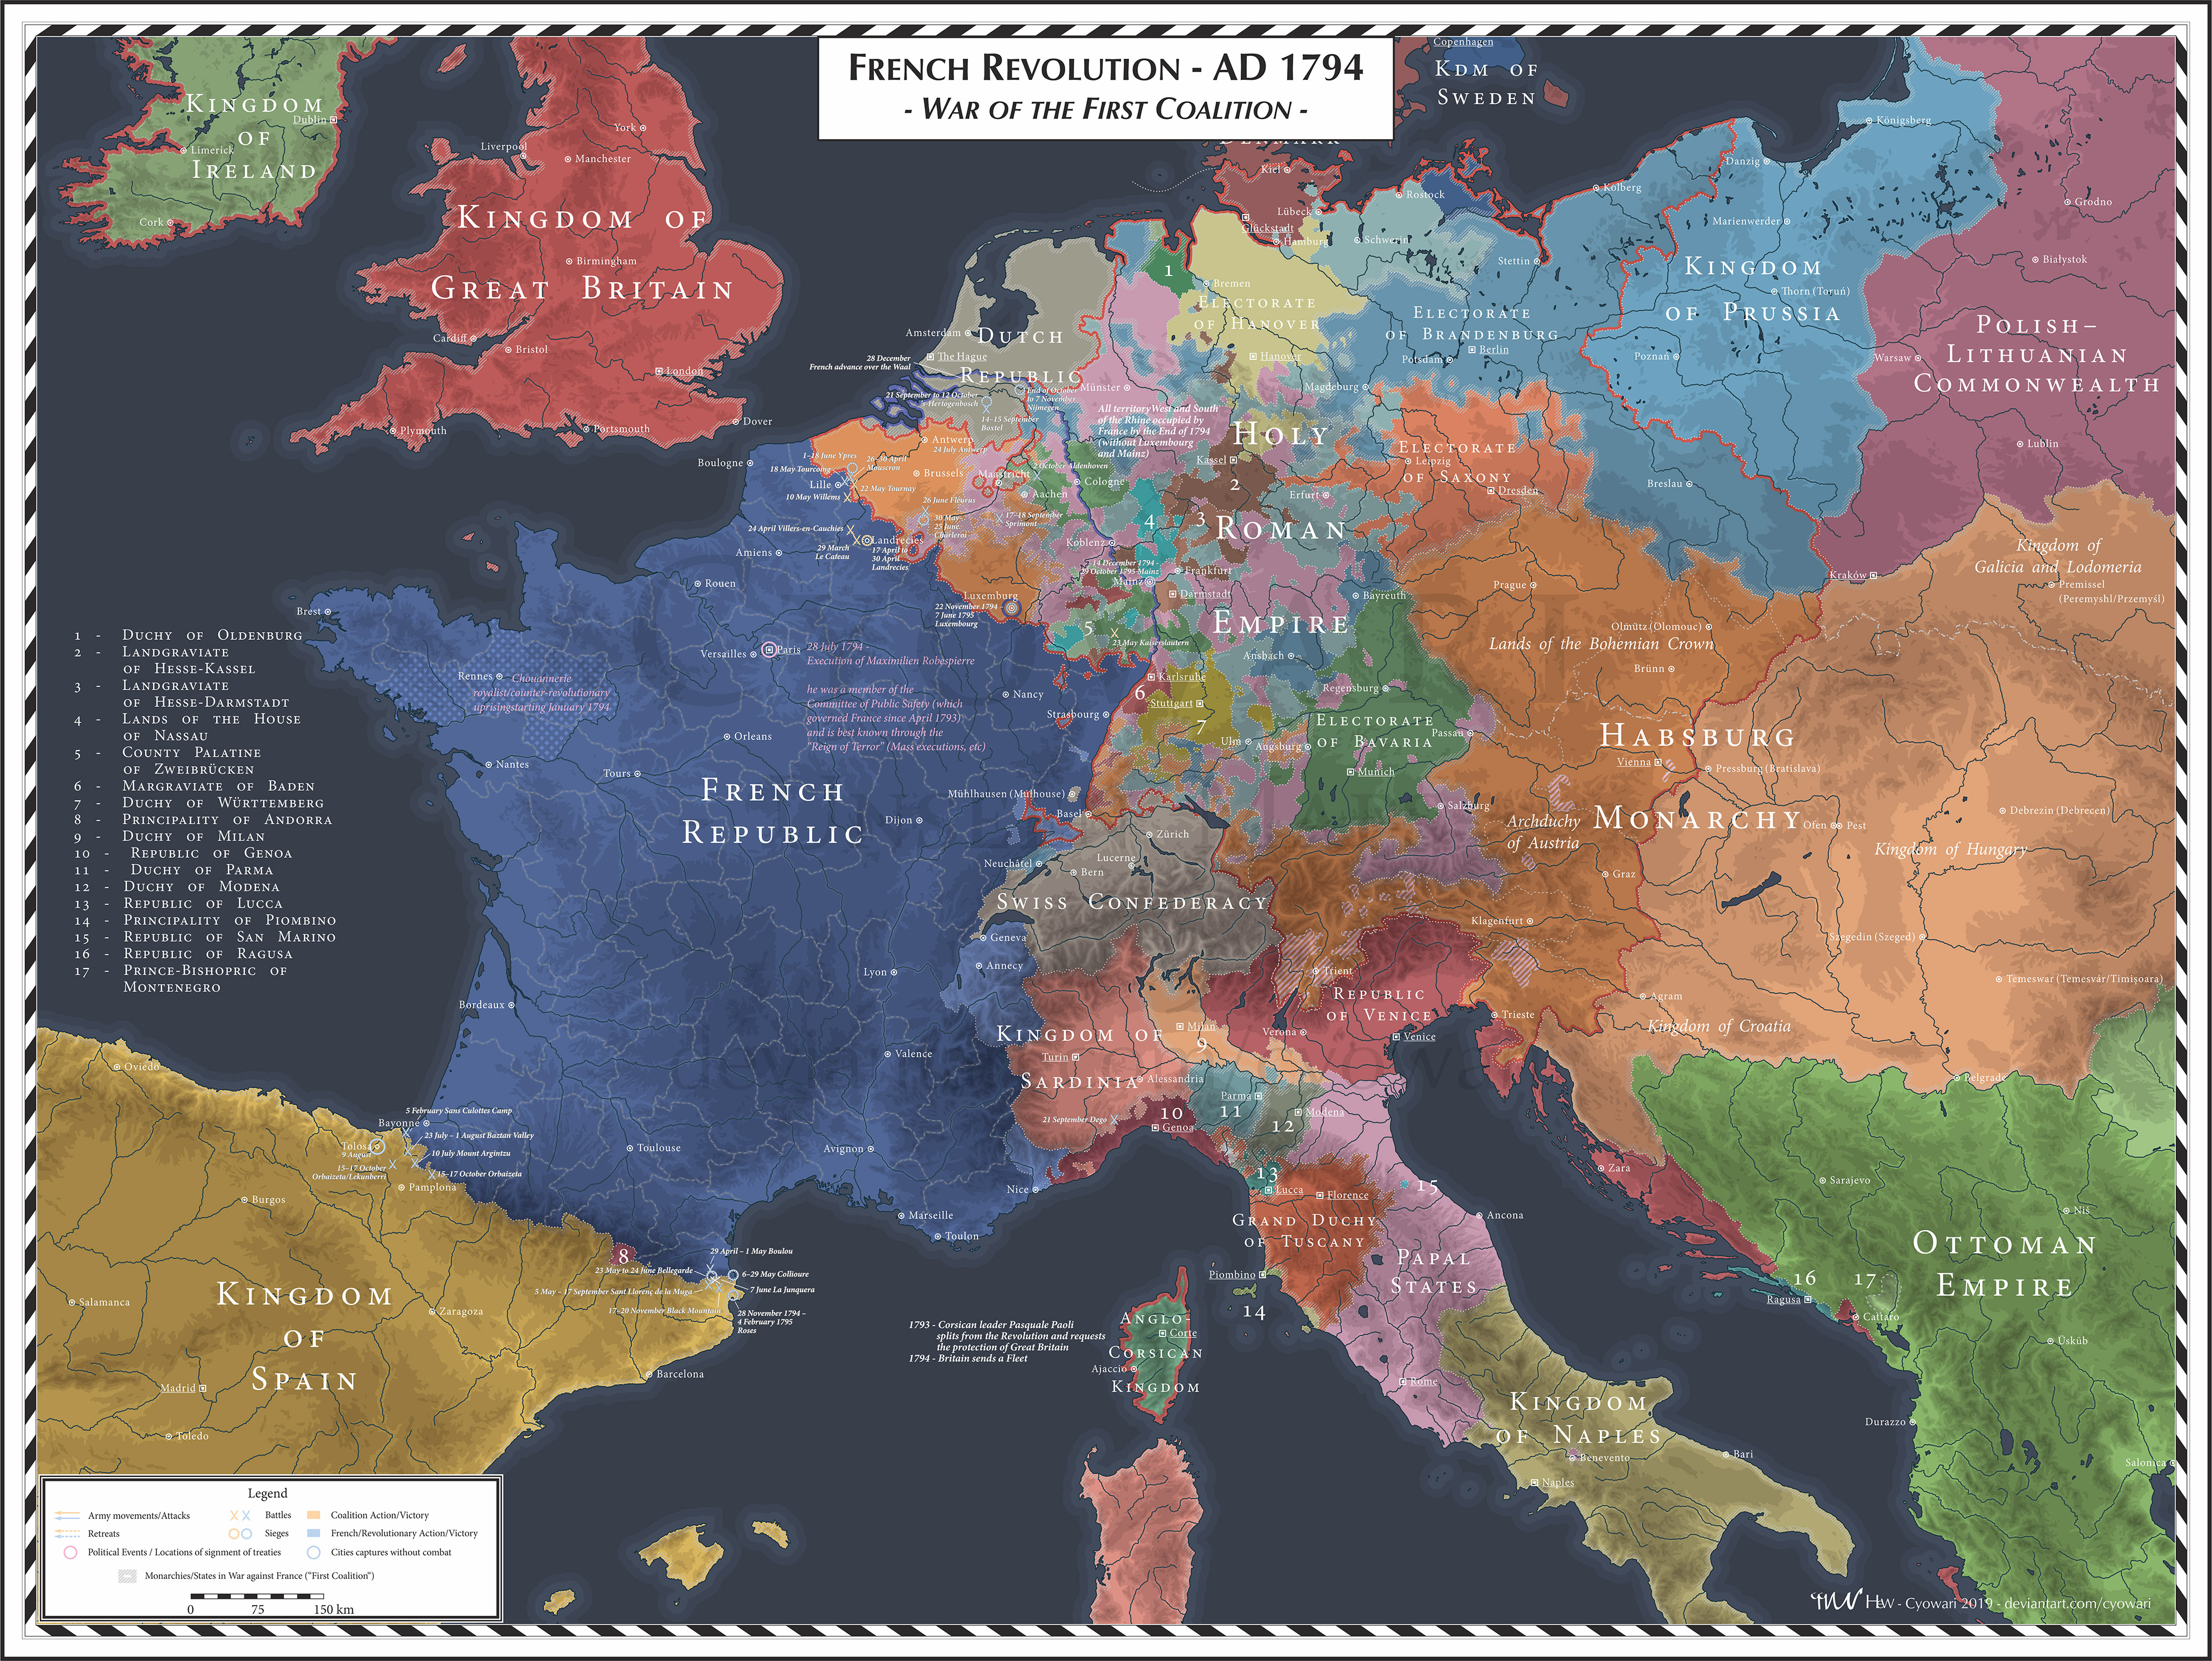 French Revolution - 1794 - First Coalition